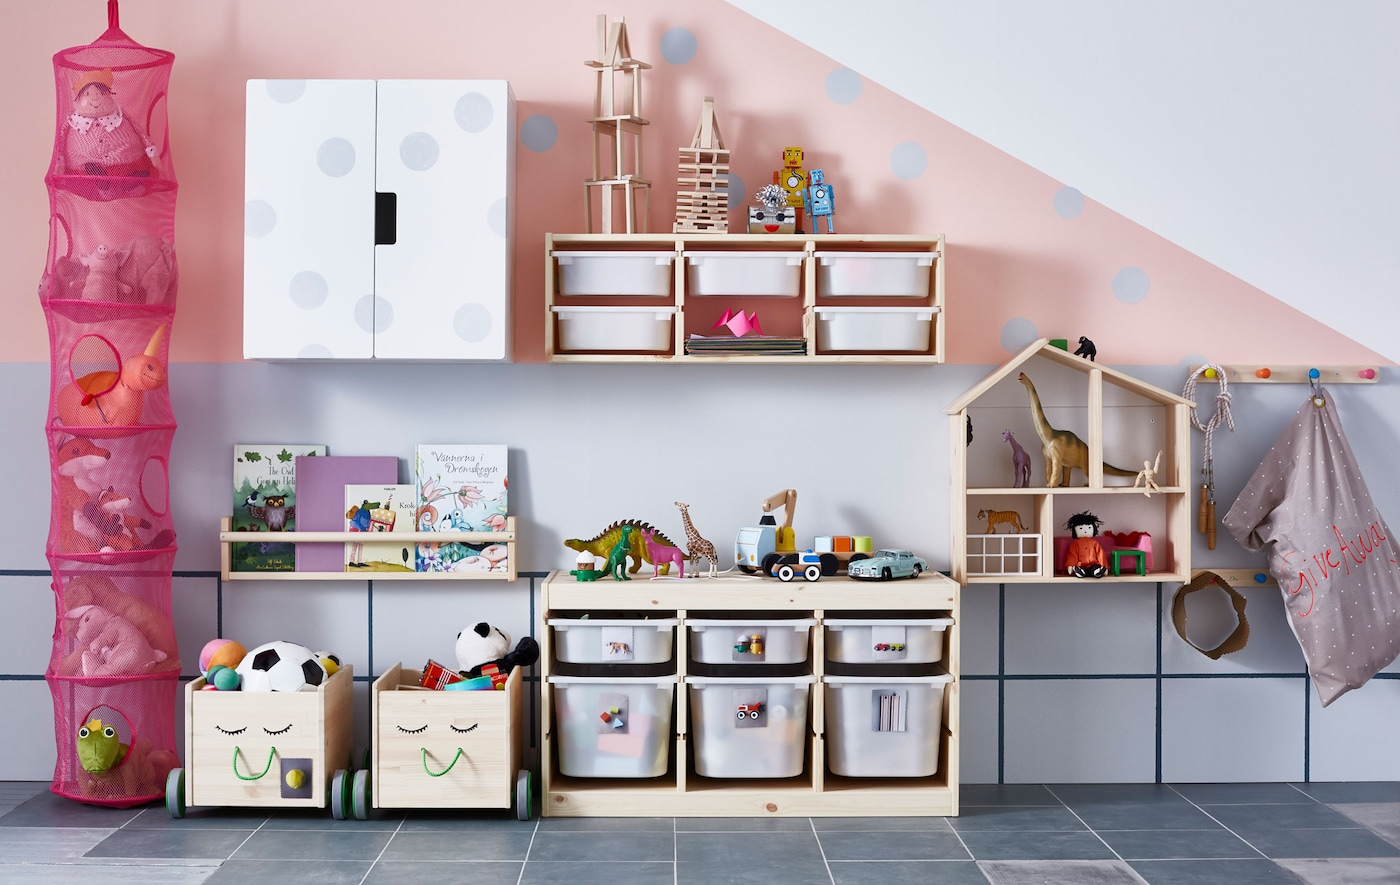 TROFAST storage combinations along with cabinets, shelves, and boxes that organise the toys in this children's room.